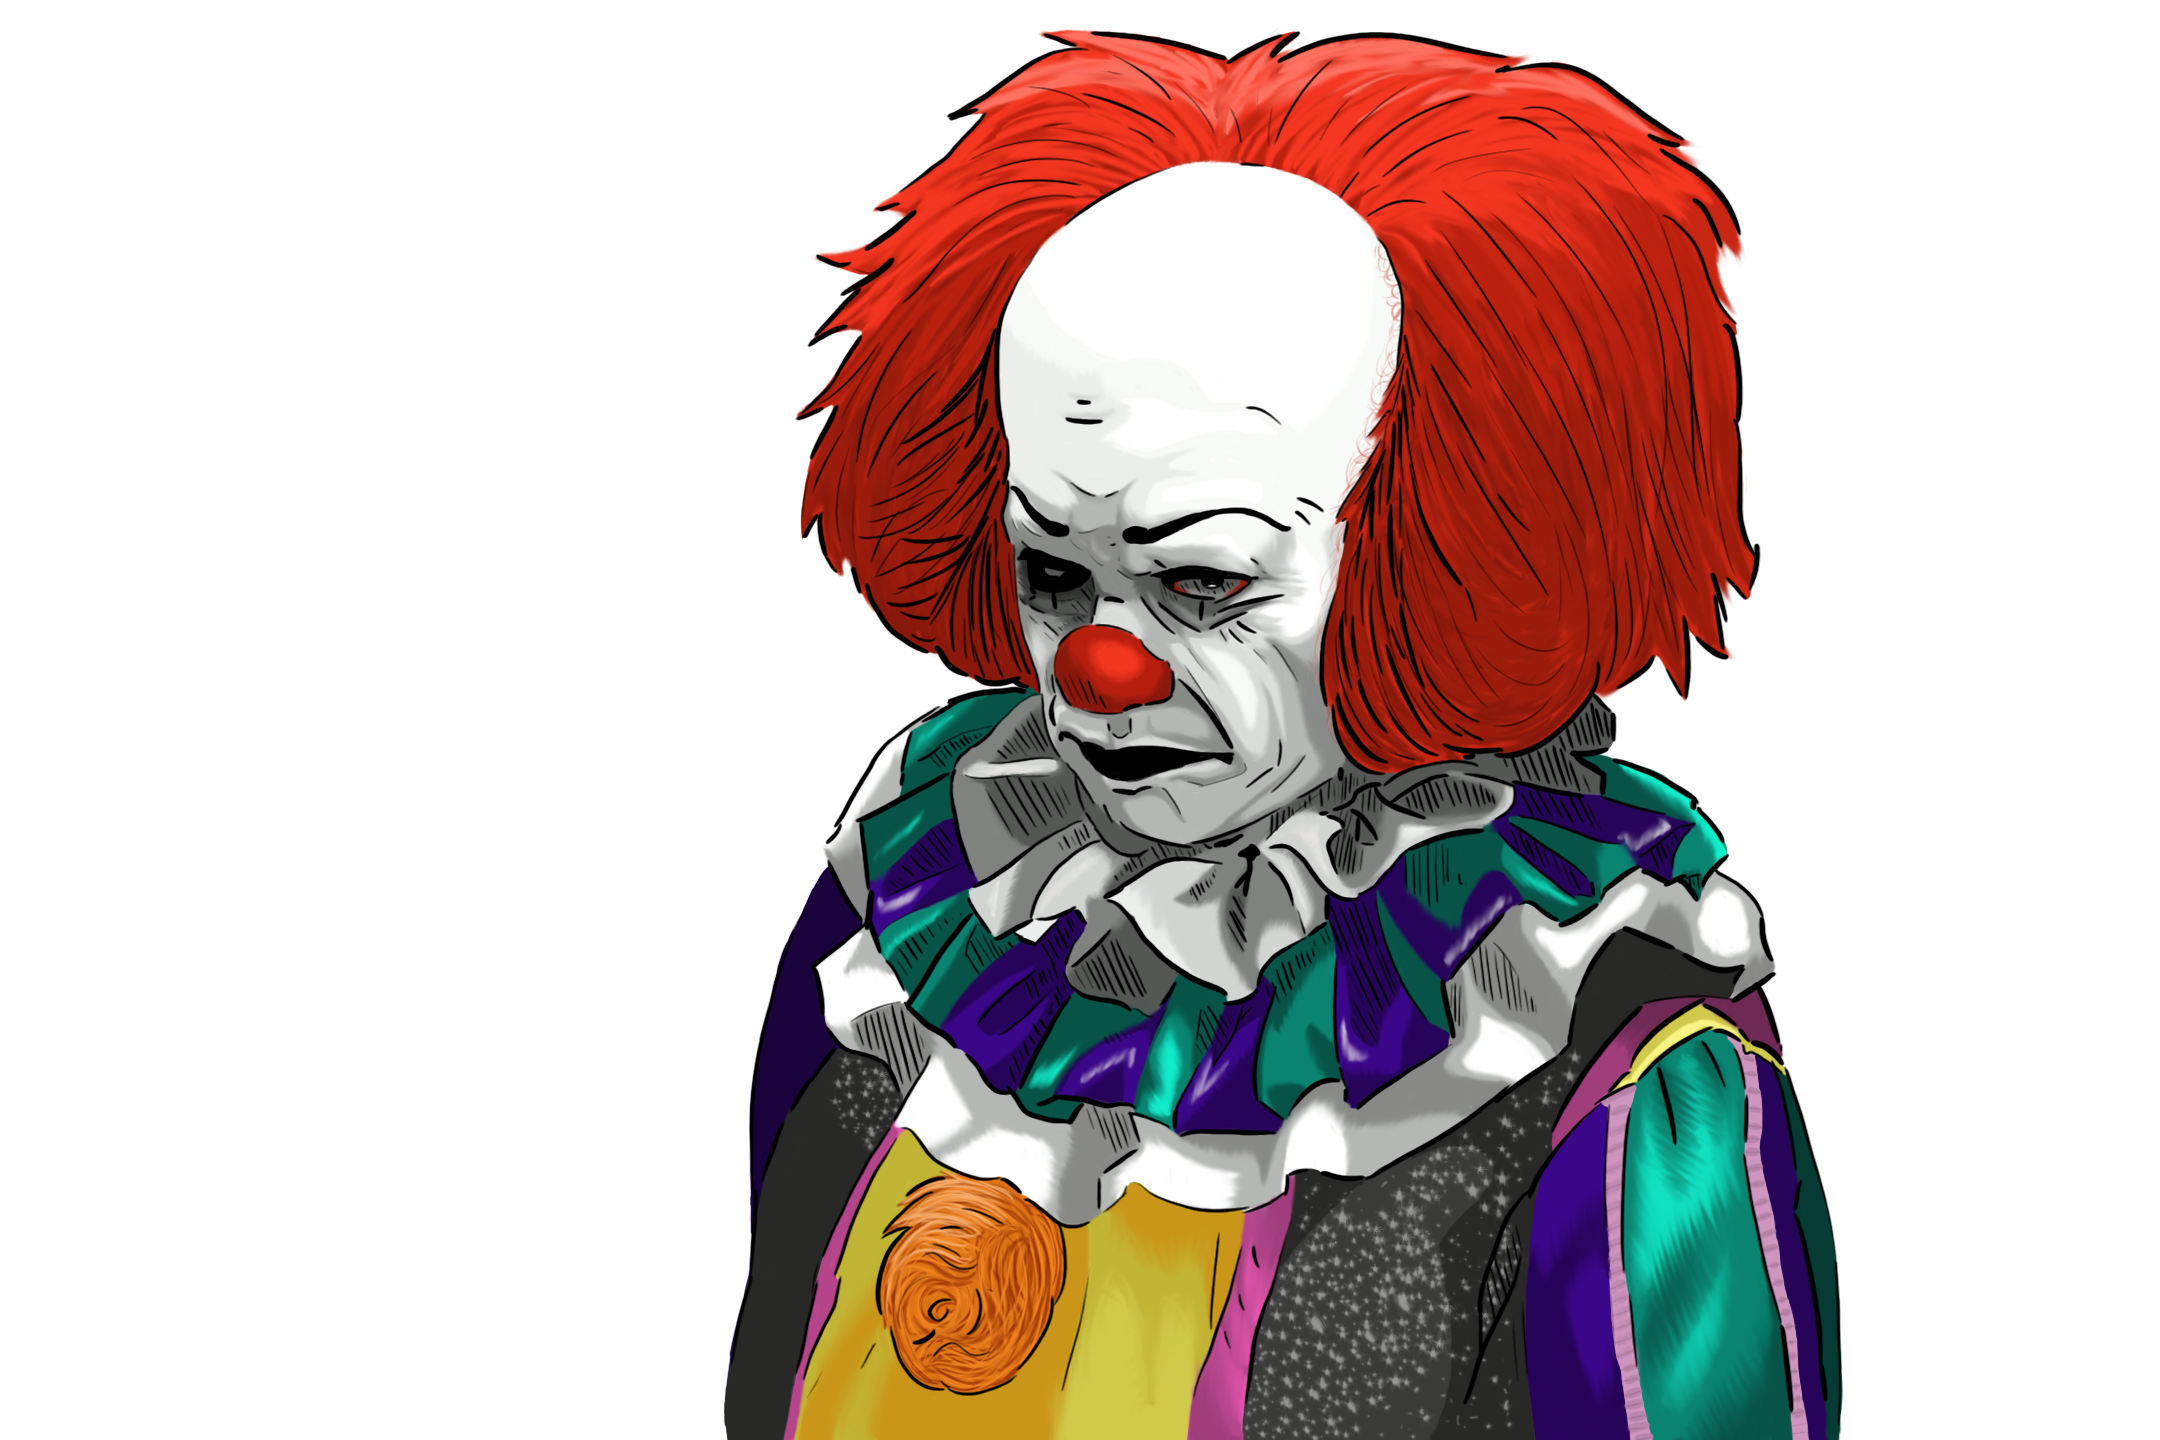 It the clown png. Pennywise by omgxero on